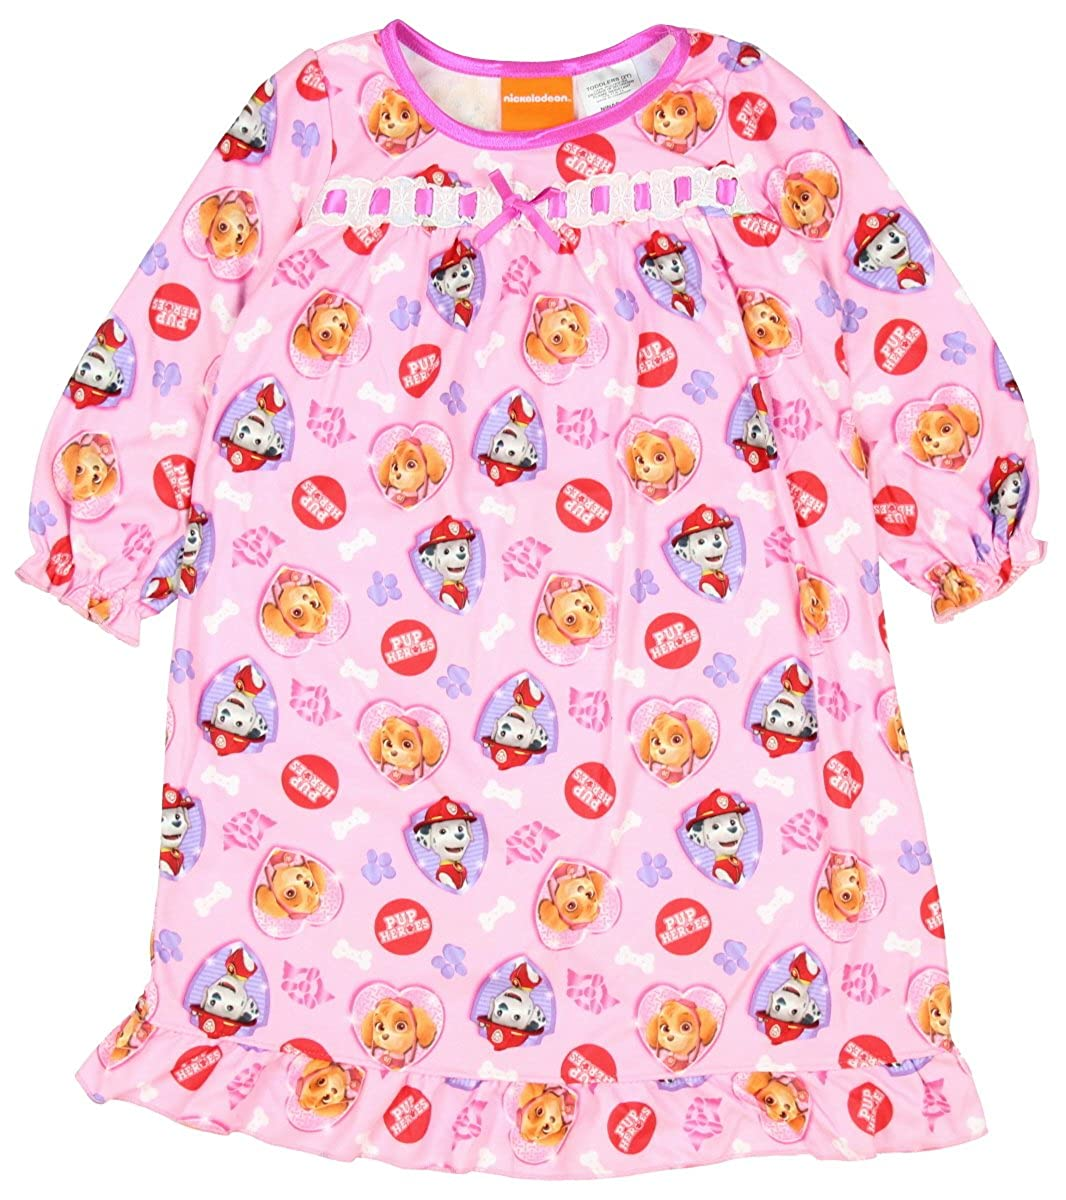 Pink Paw Patrol Toddler Girls Long Sleeve Nightgown